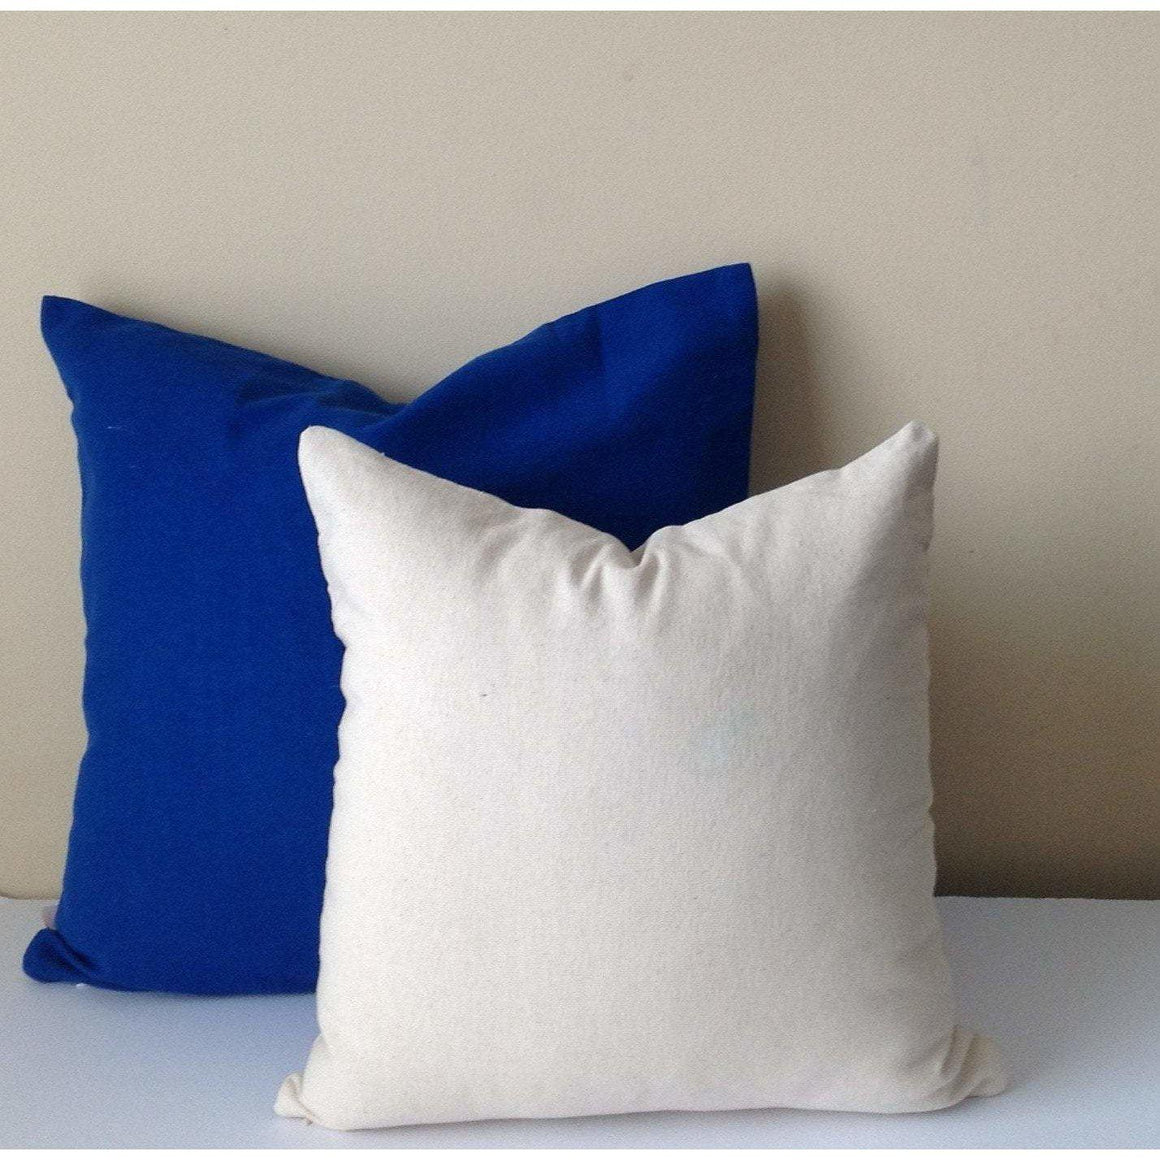 FREE SHIPPING Set of two, Solid cotton Pillows, Big pillow cover, plain pillows, 12x16 12x18 12x20 14x14 16x16 18x18 20x20 24x24 30x30 - Snazzy Living